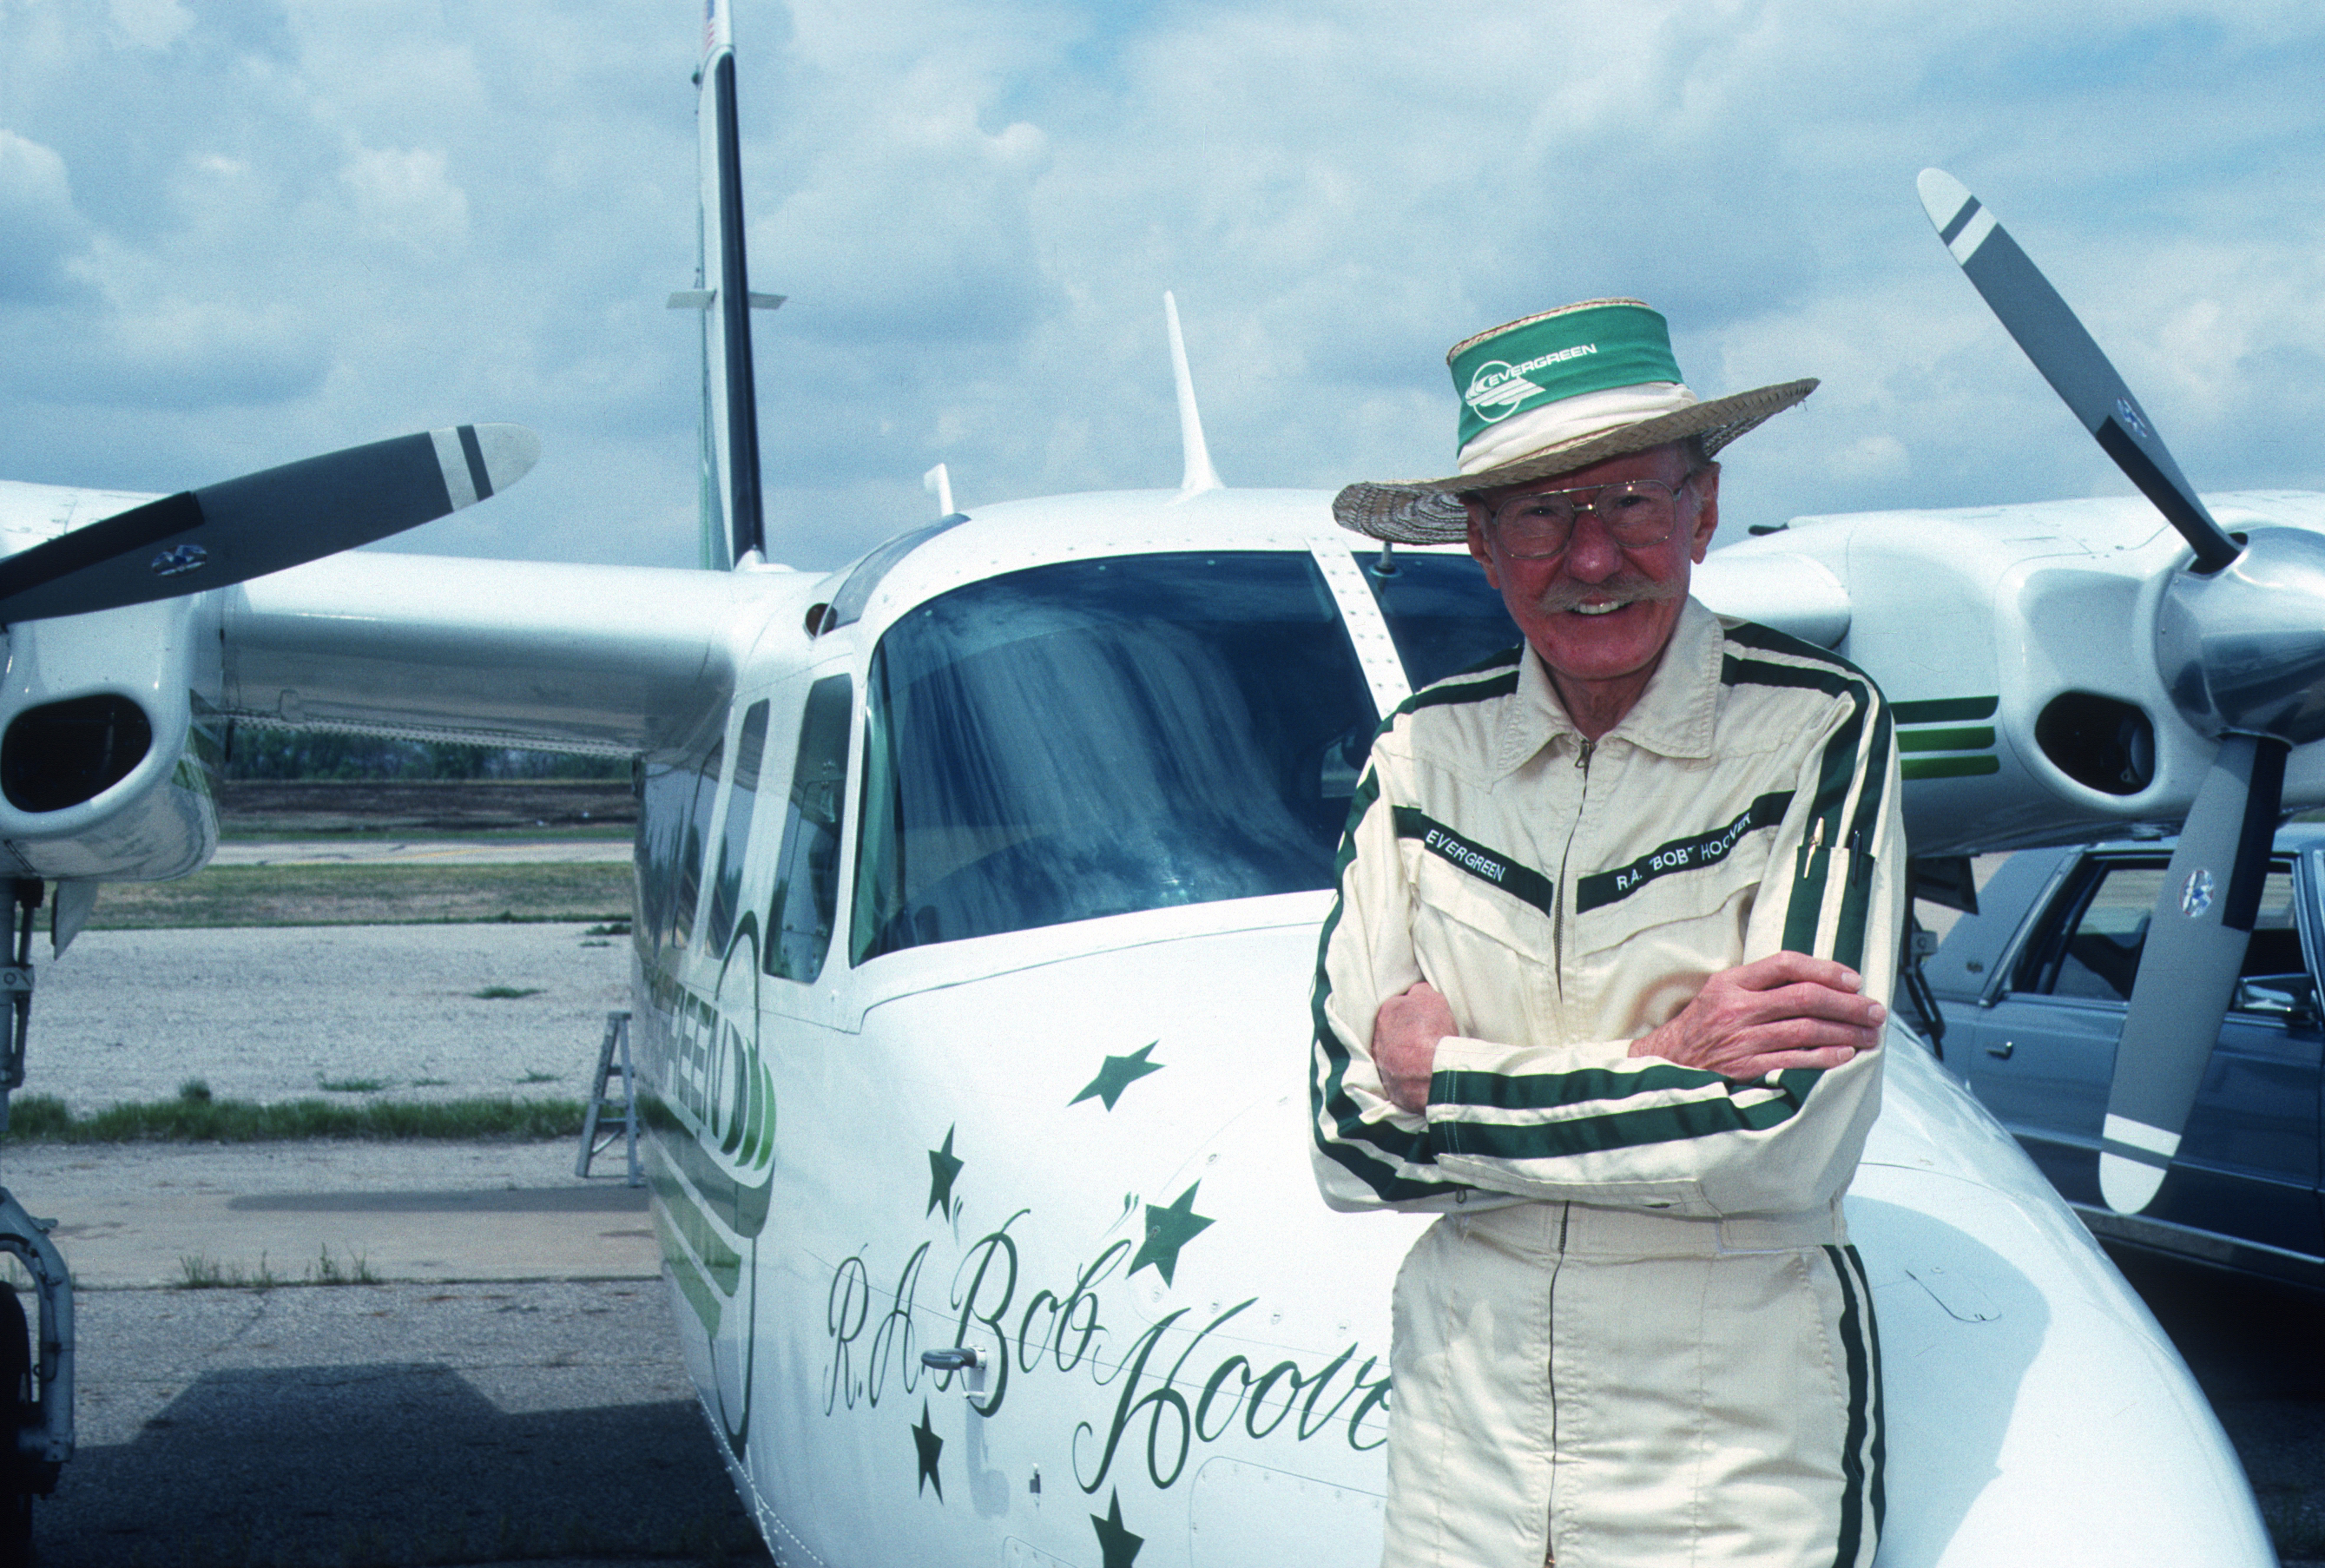 R.A. 'Bob' Hoover is remembered as one of the greatest pilots and inspired generations of aviators to follow in his footsteps. Courtesy photo.